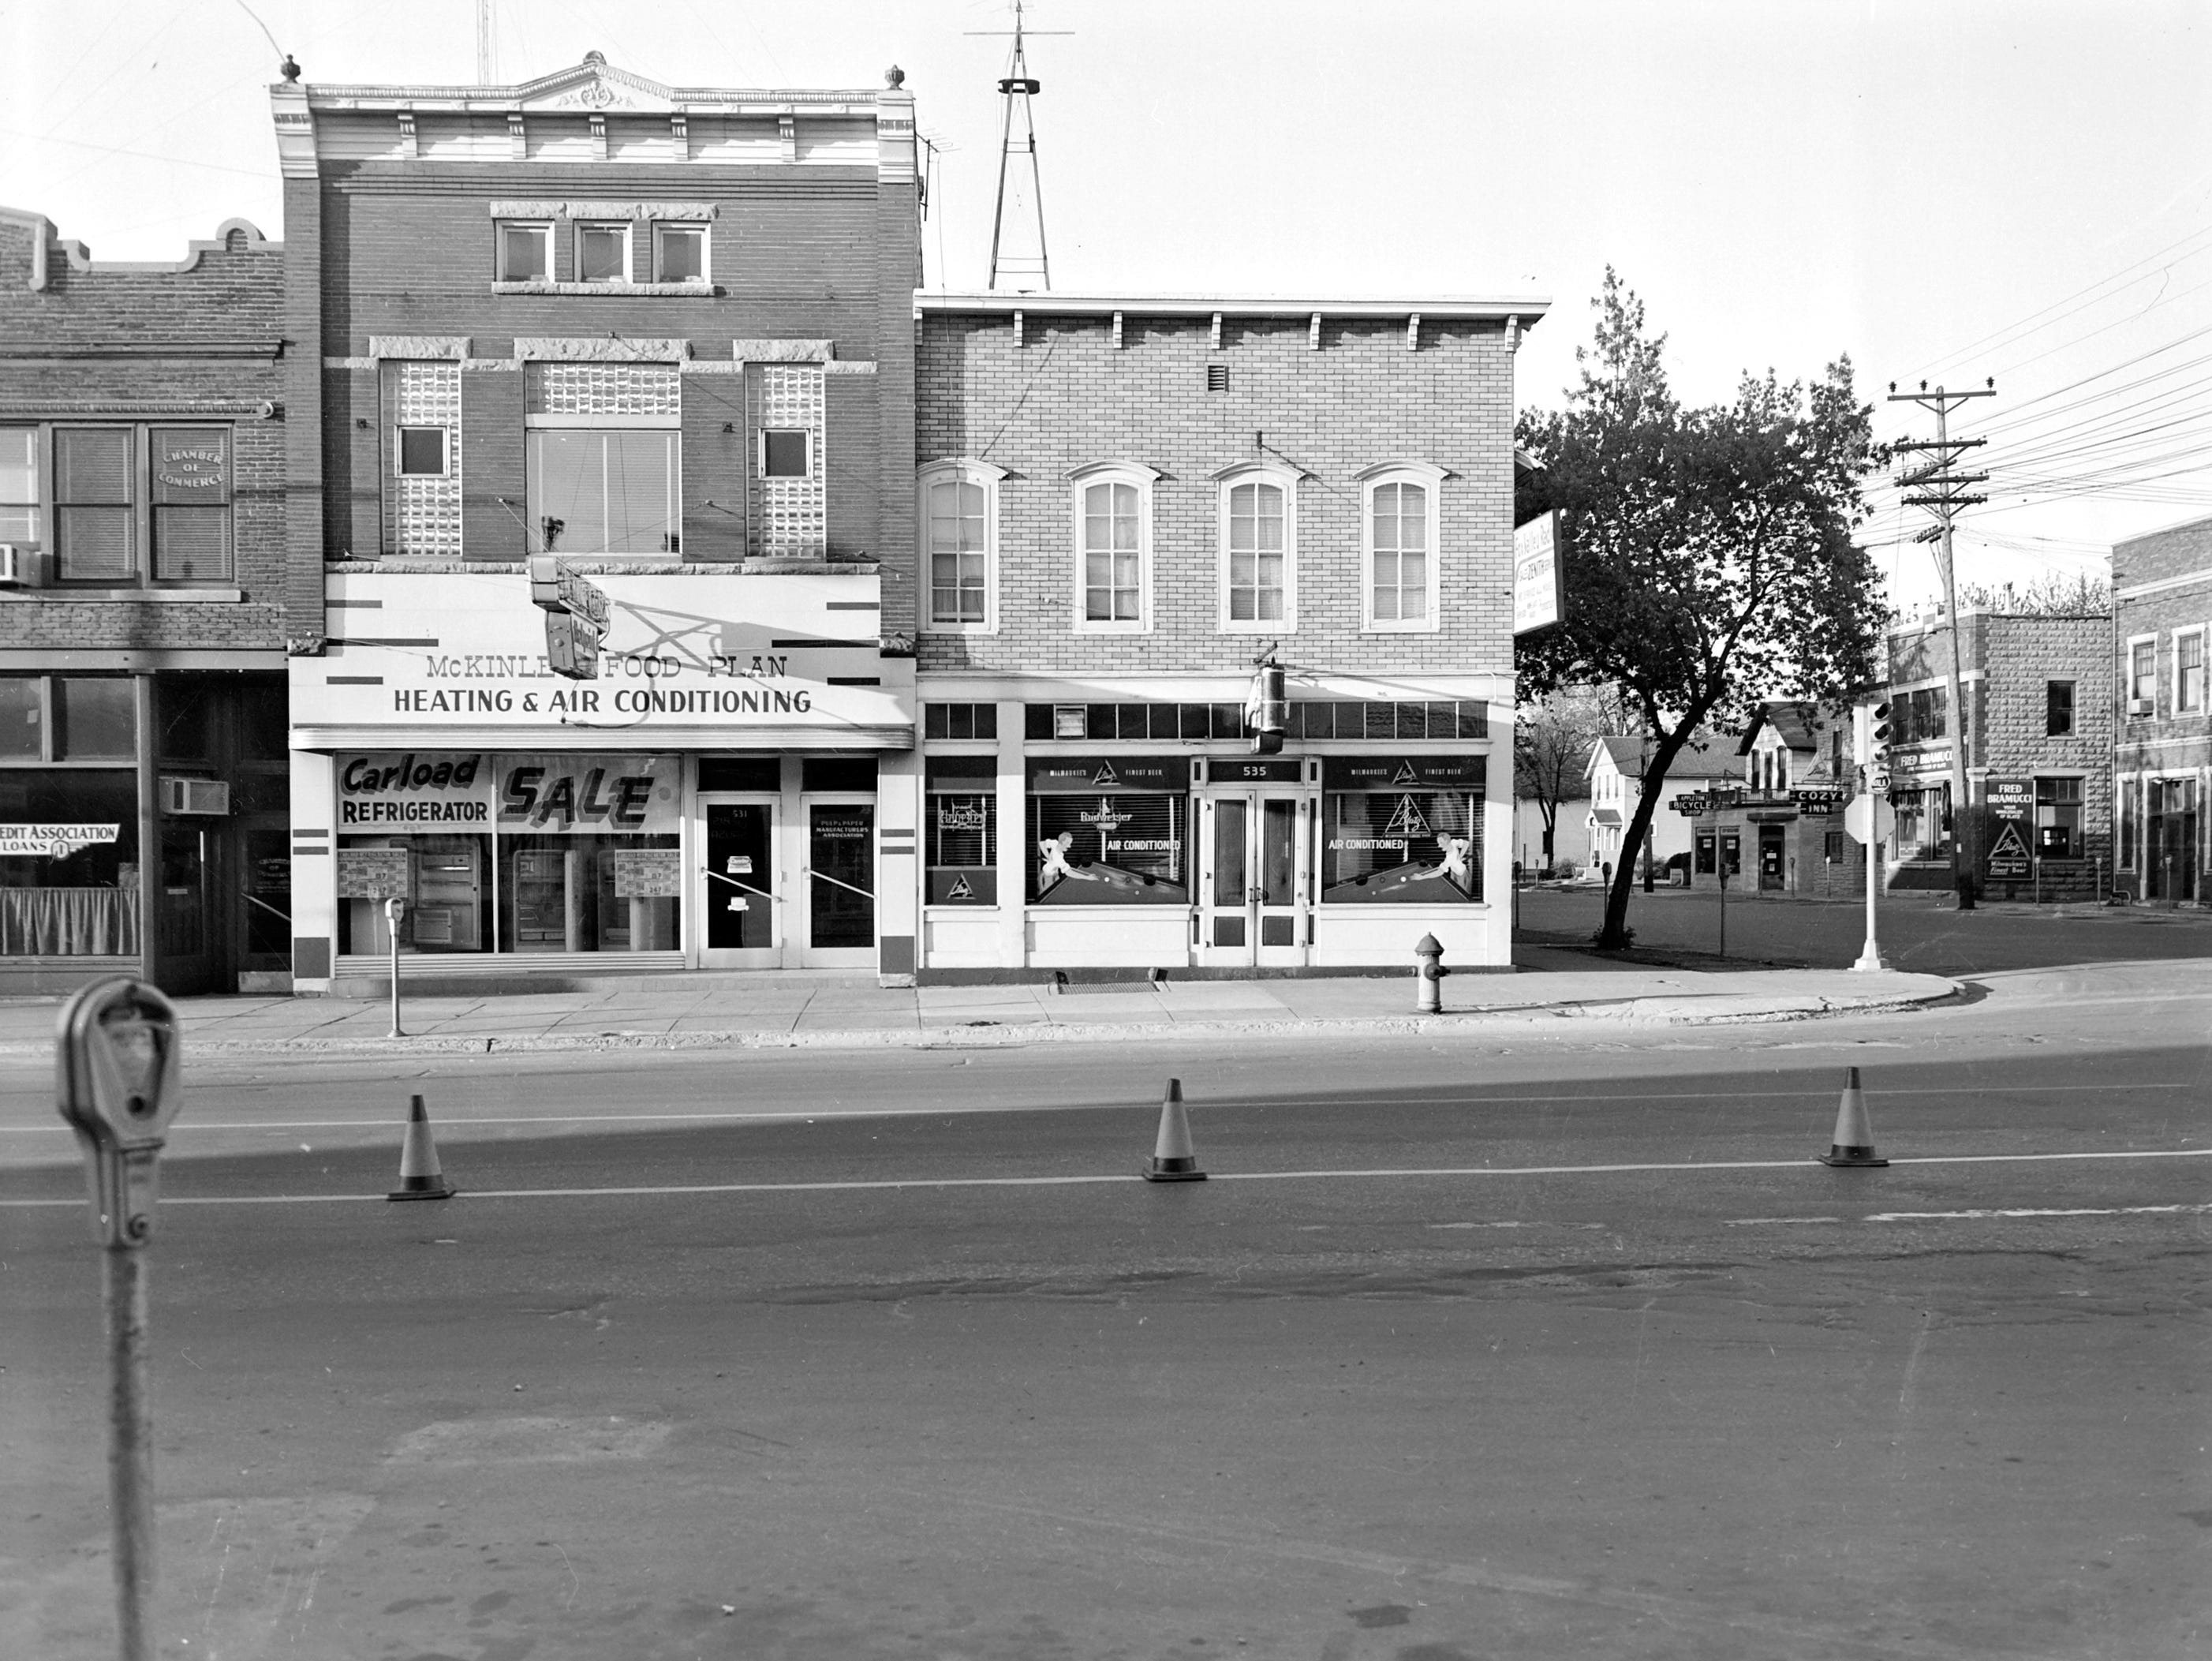 1957 Downtown Appleton. 500 West block on the south side of College Avenue: Production Credit Association / Chamber of Commerce. McKinley Food Plan Heating & Air Conditioning. Wettengels Tavern. Post-Crescent photo by staff.